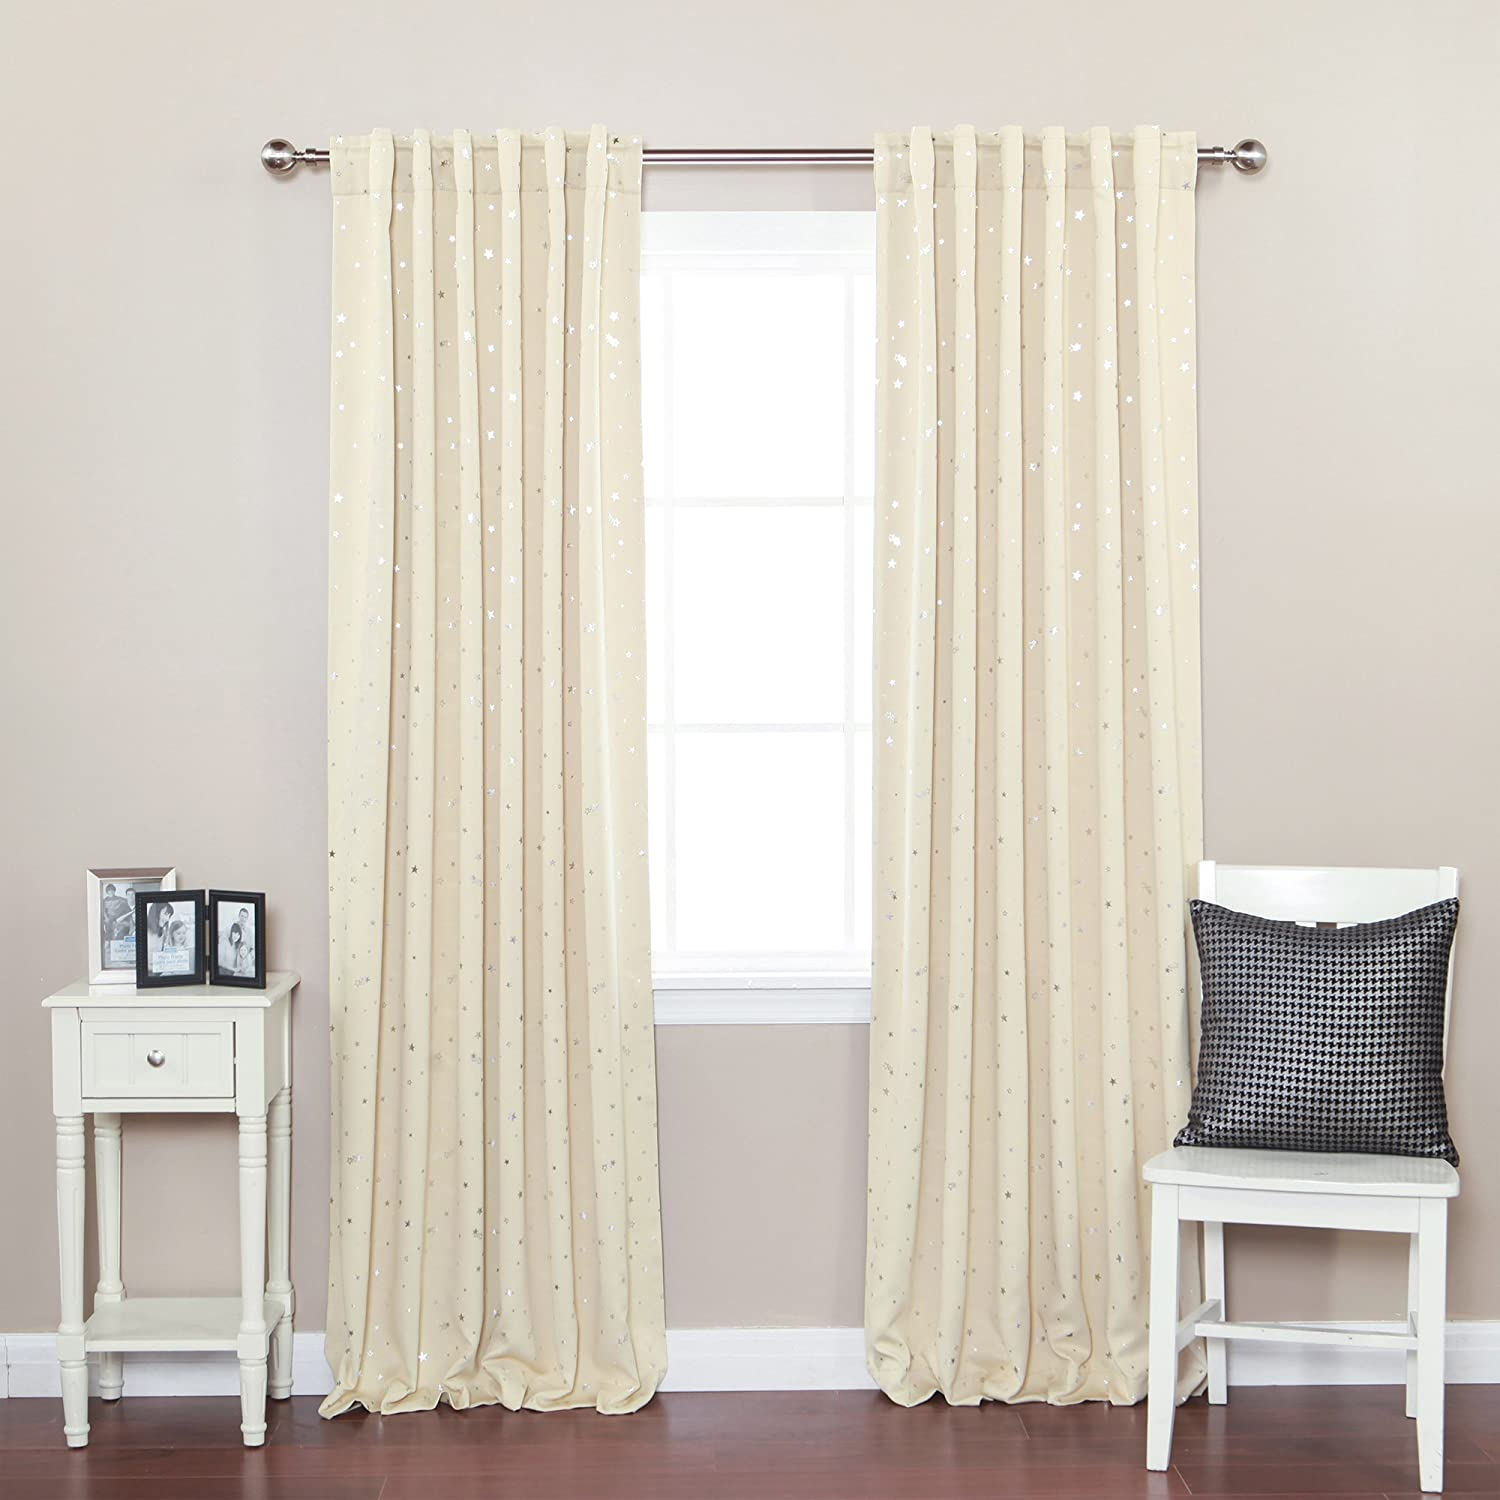 tie lauren curtain up curtains rod ebay window shade thermal valance insulated platinum l bathroom nicetown pocket x w set amazon blackout panel small for com backs ruffle